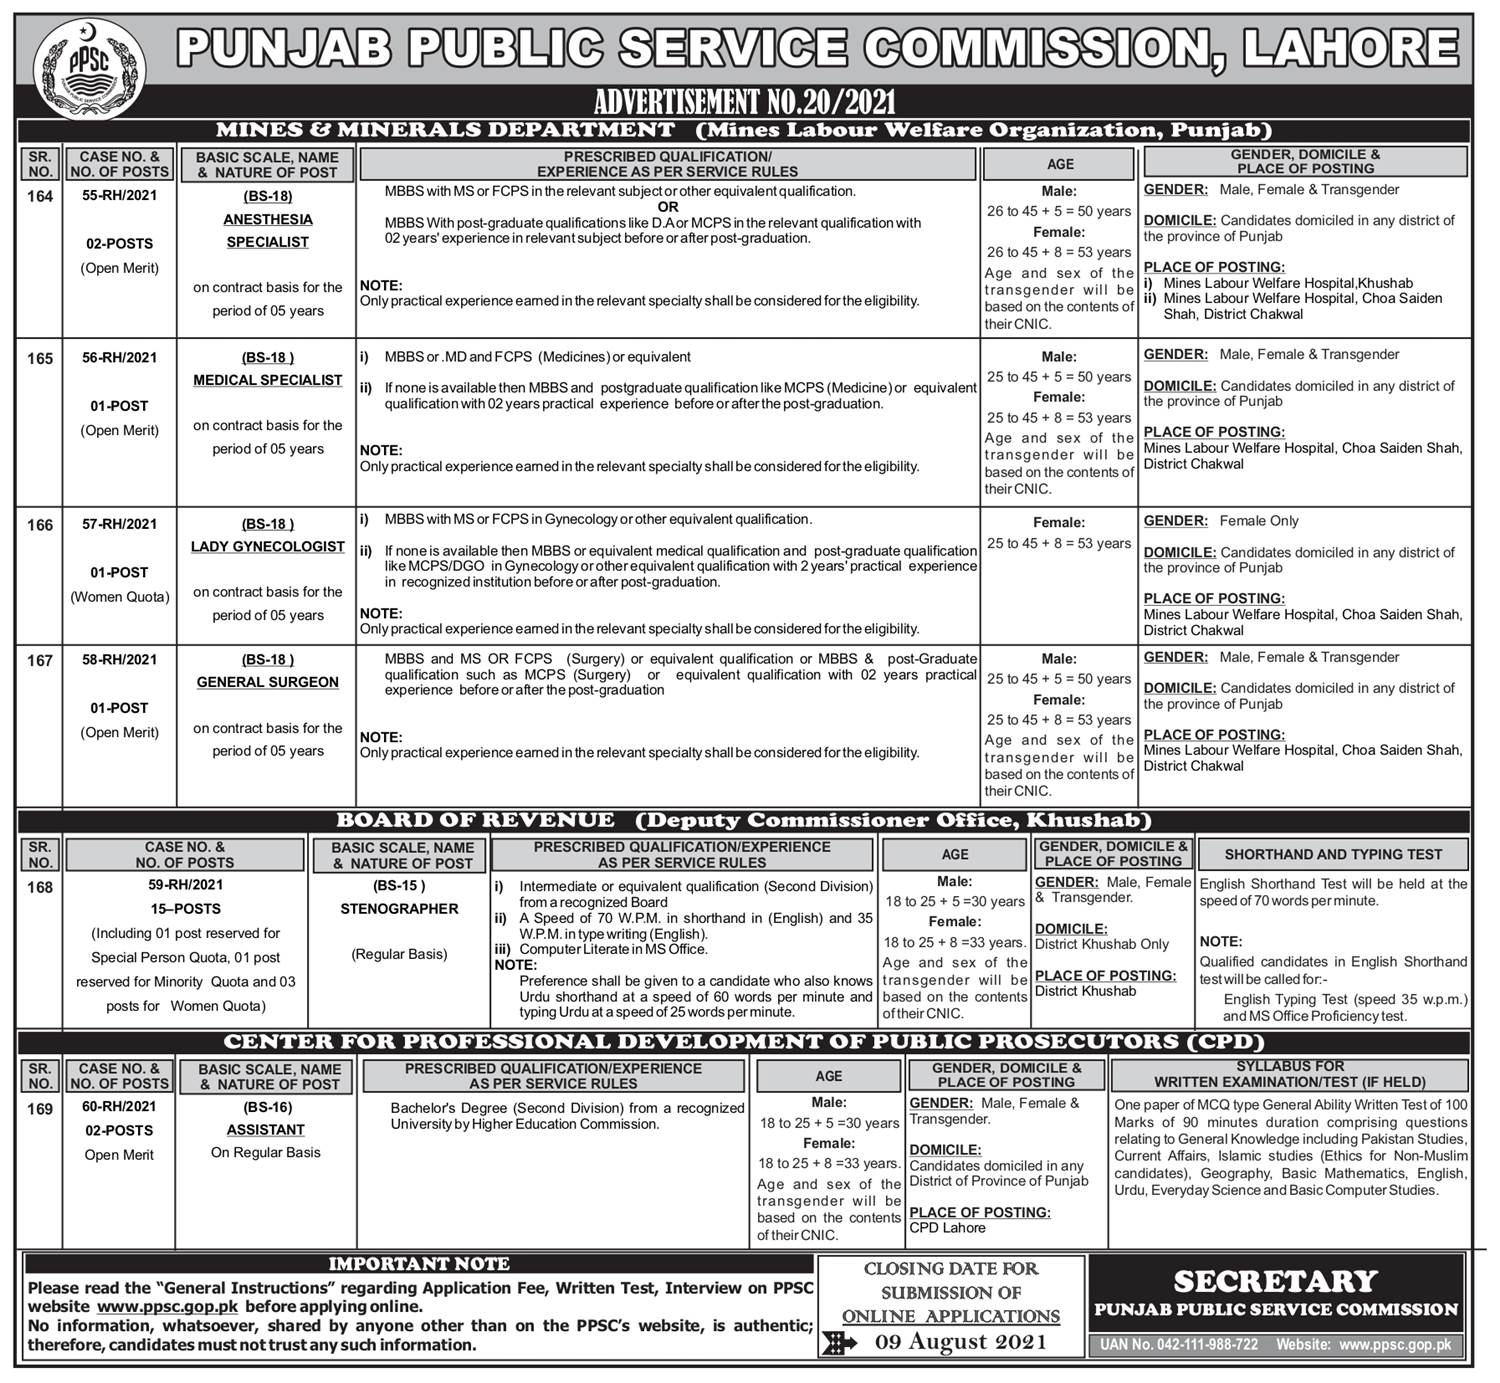 PPSC Latest Jobs Ads 2021 Online Application Form Download Test Dates Schedule